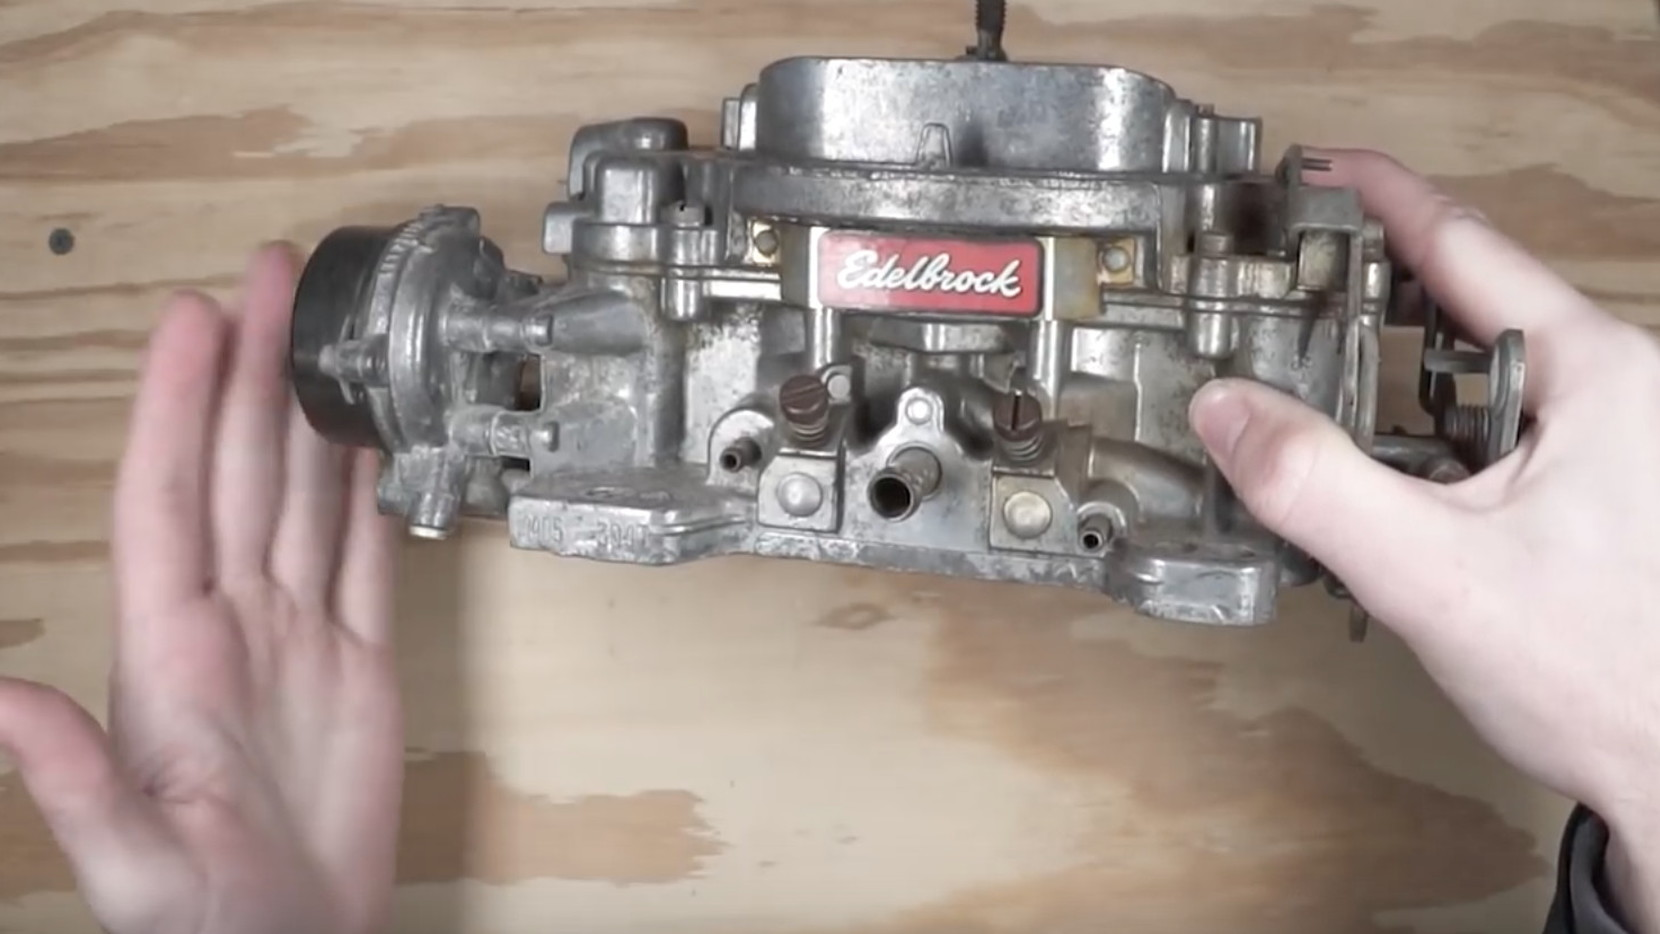 How do you rebuild a carburetor?